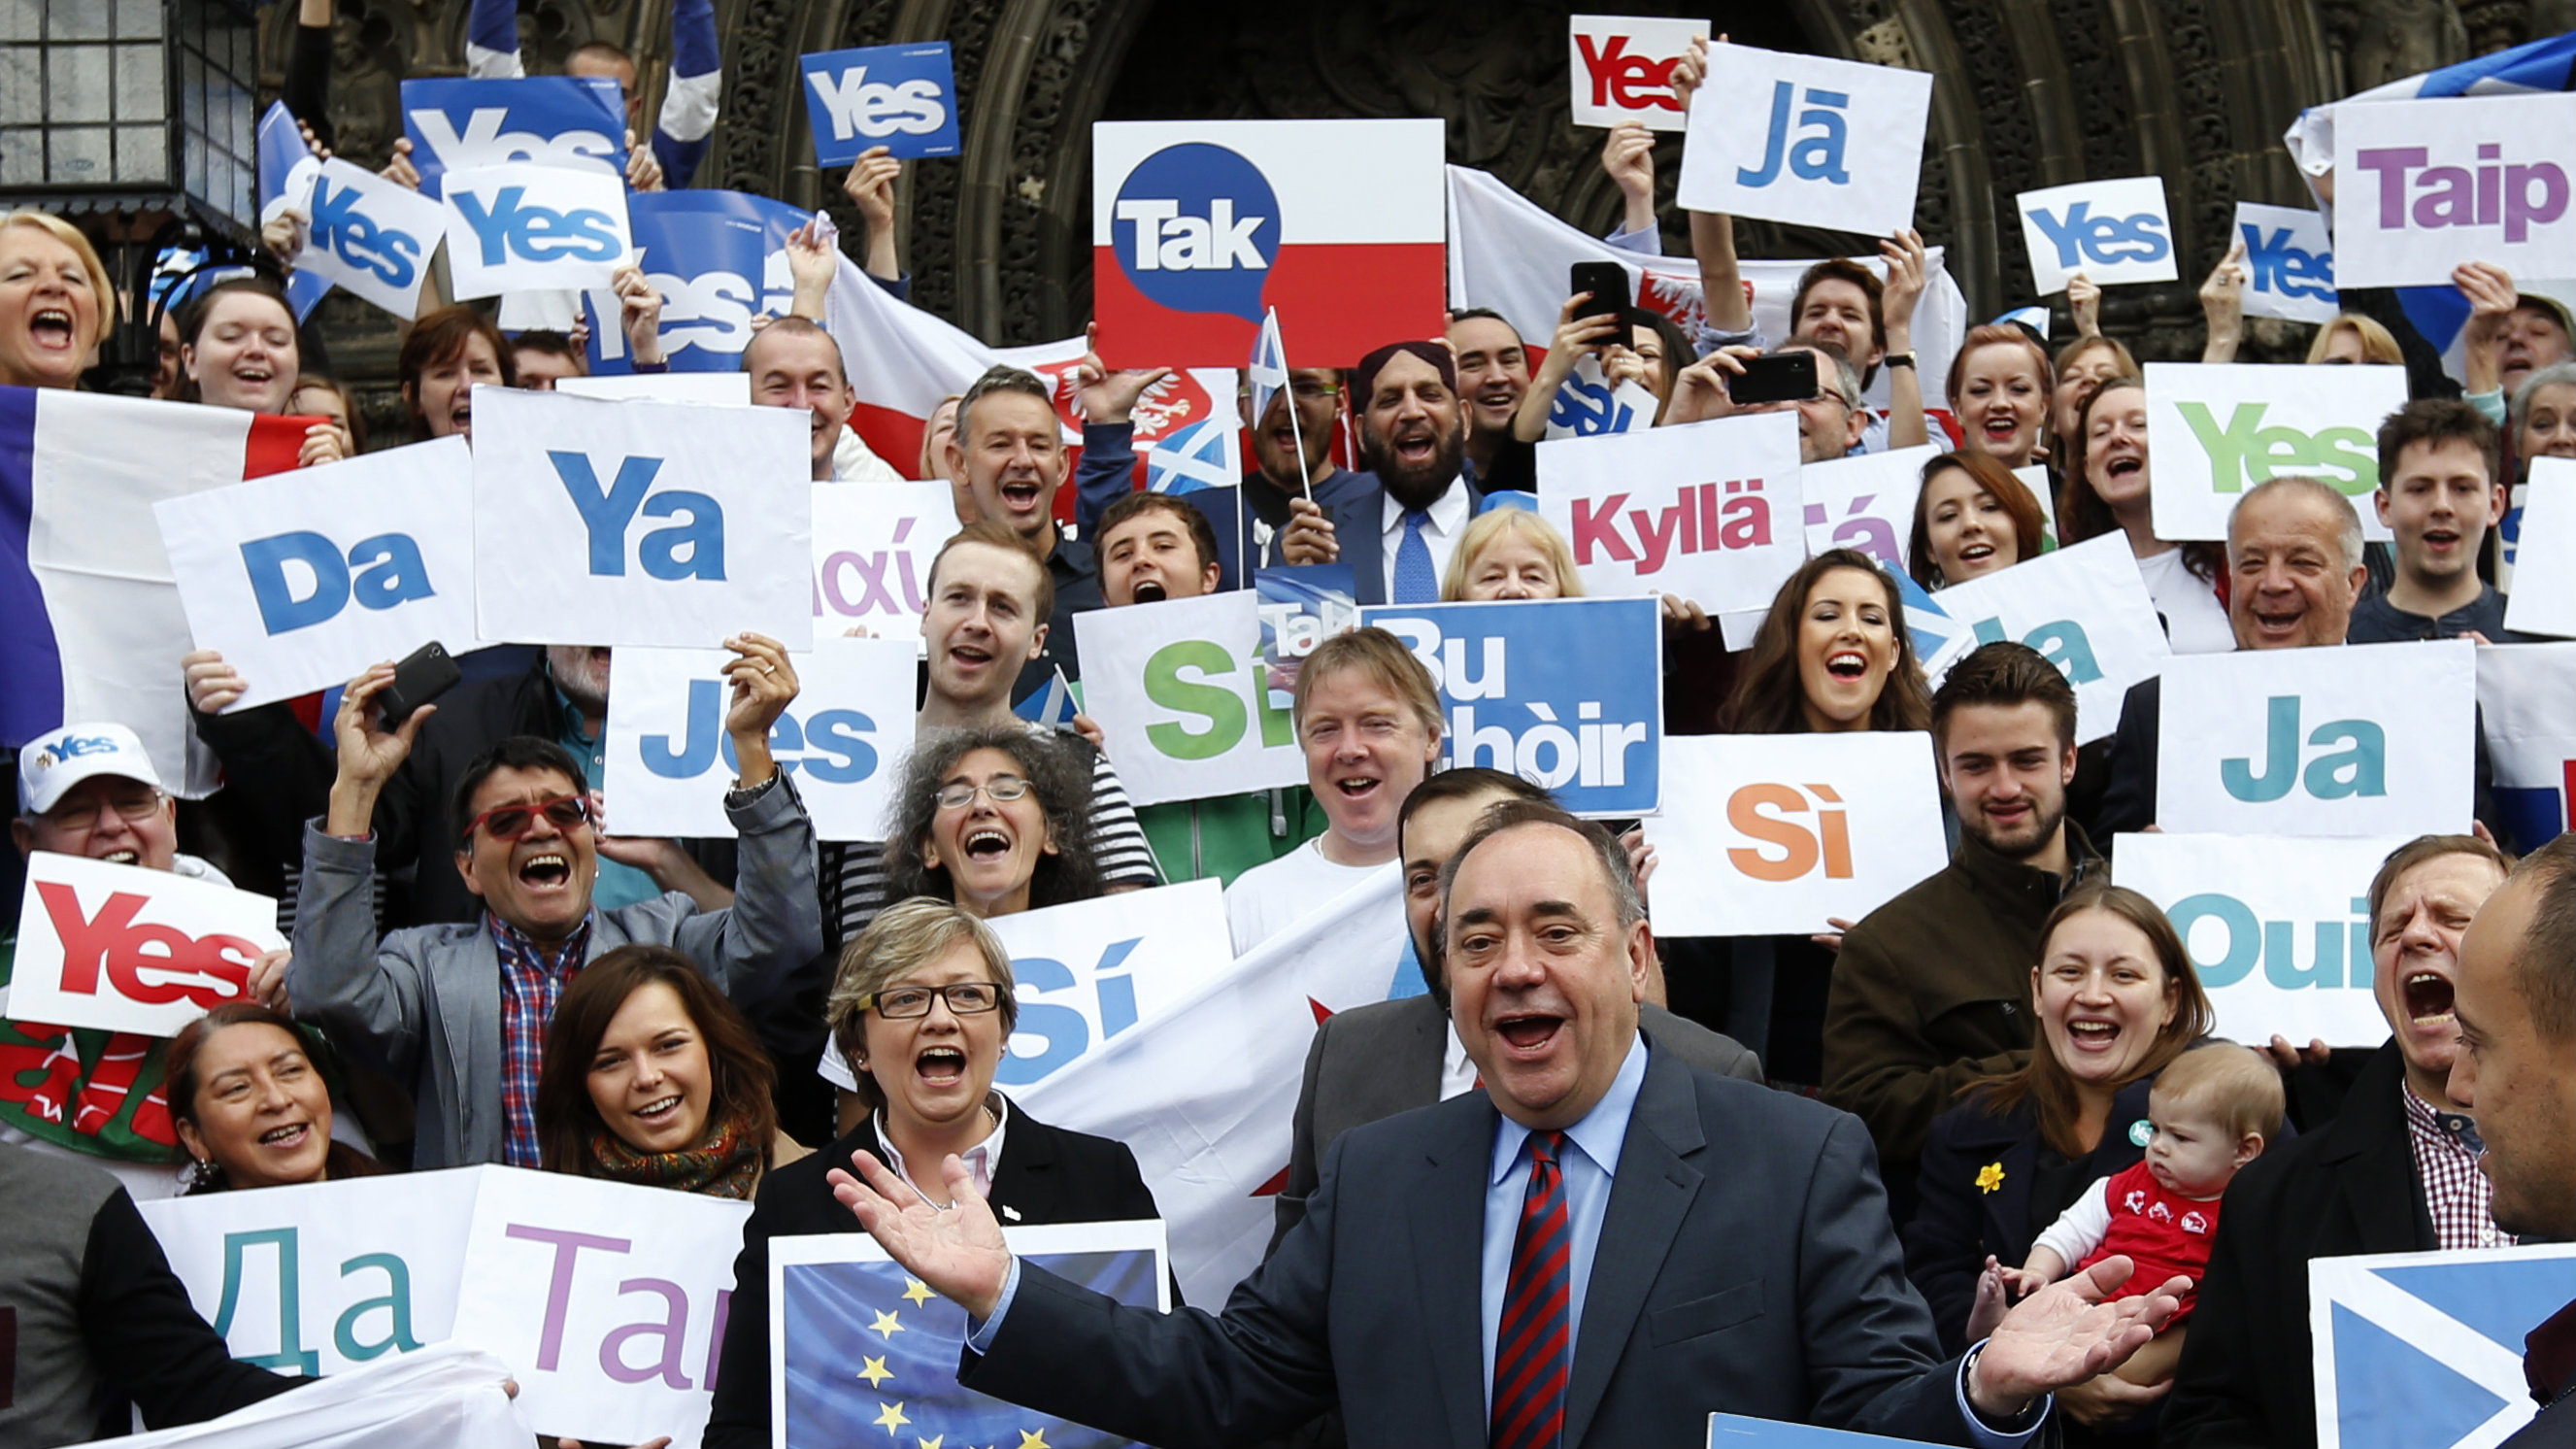 Scotland's First Minister Alex Salmond (front) poses with supporters of the 'Yes Campaign' in Edinburgh, Scotland September 9, 2014.